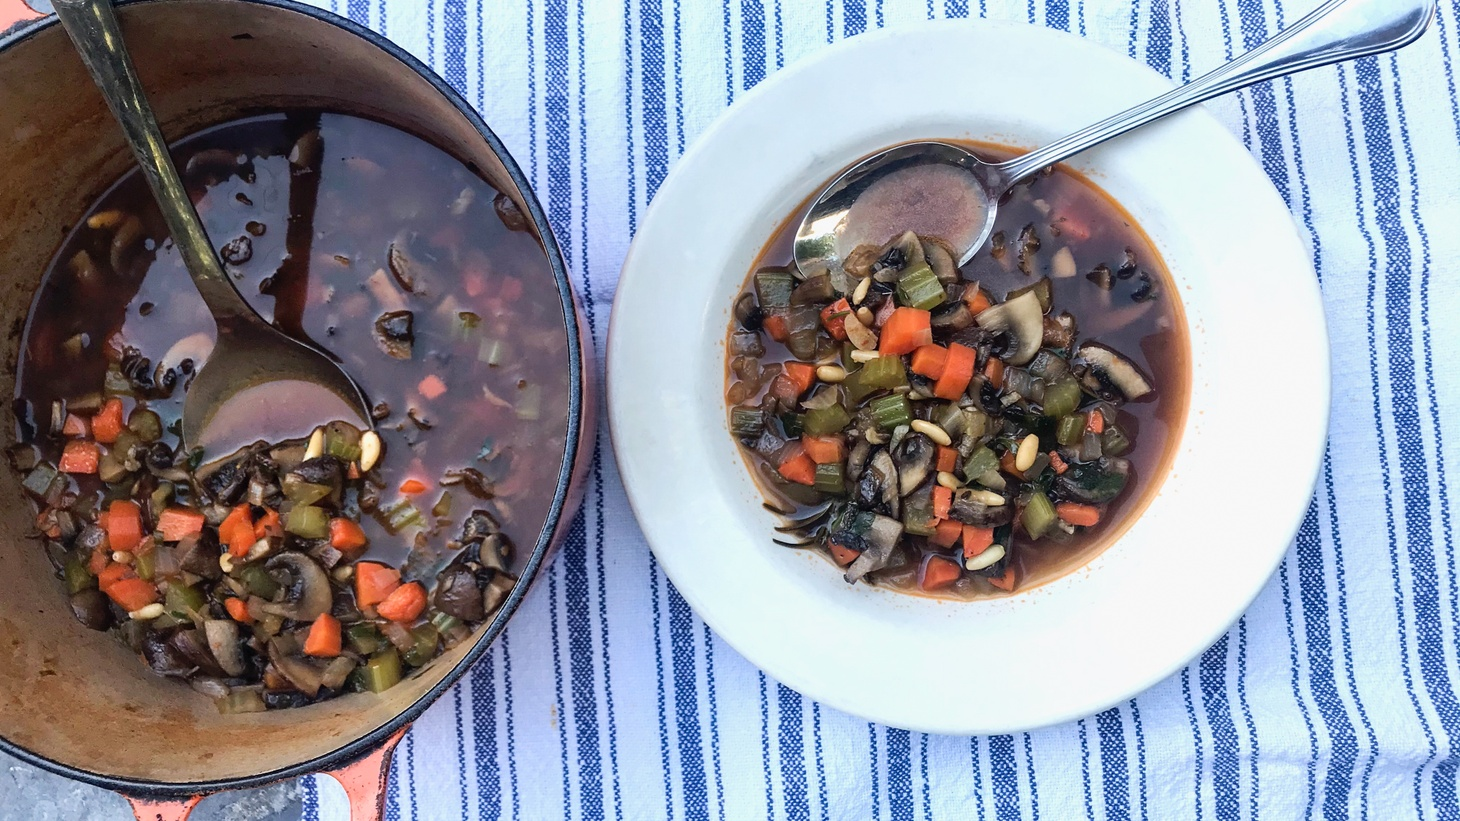 Evan Kleiman's Almost Instant Mushroom Soup is easy to make, and the recipe can also be used as a condiment for a delicious mushroom risotto or as a base for stroganoff. If you use less liquid, it becomes a great pasta sauce or base for lasagne.